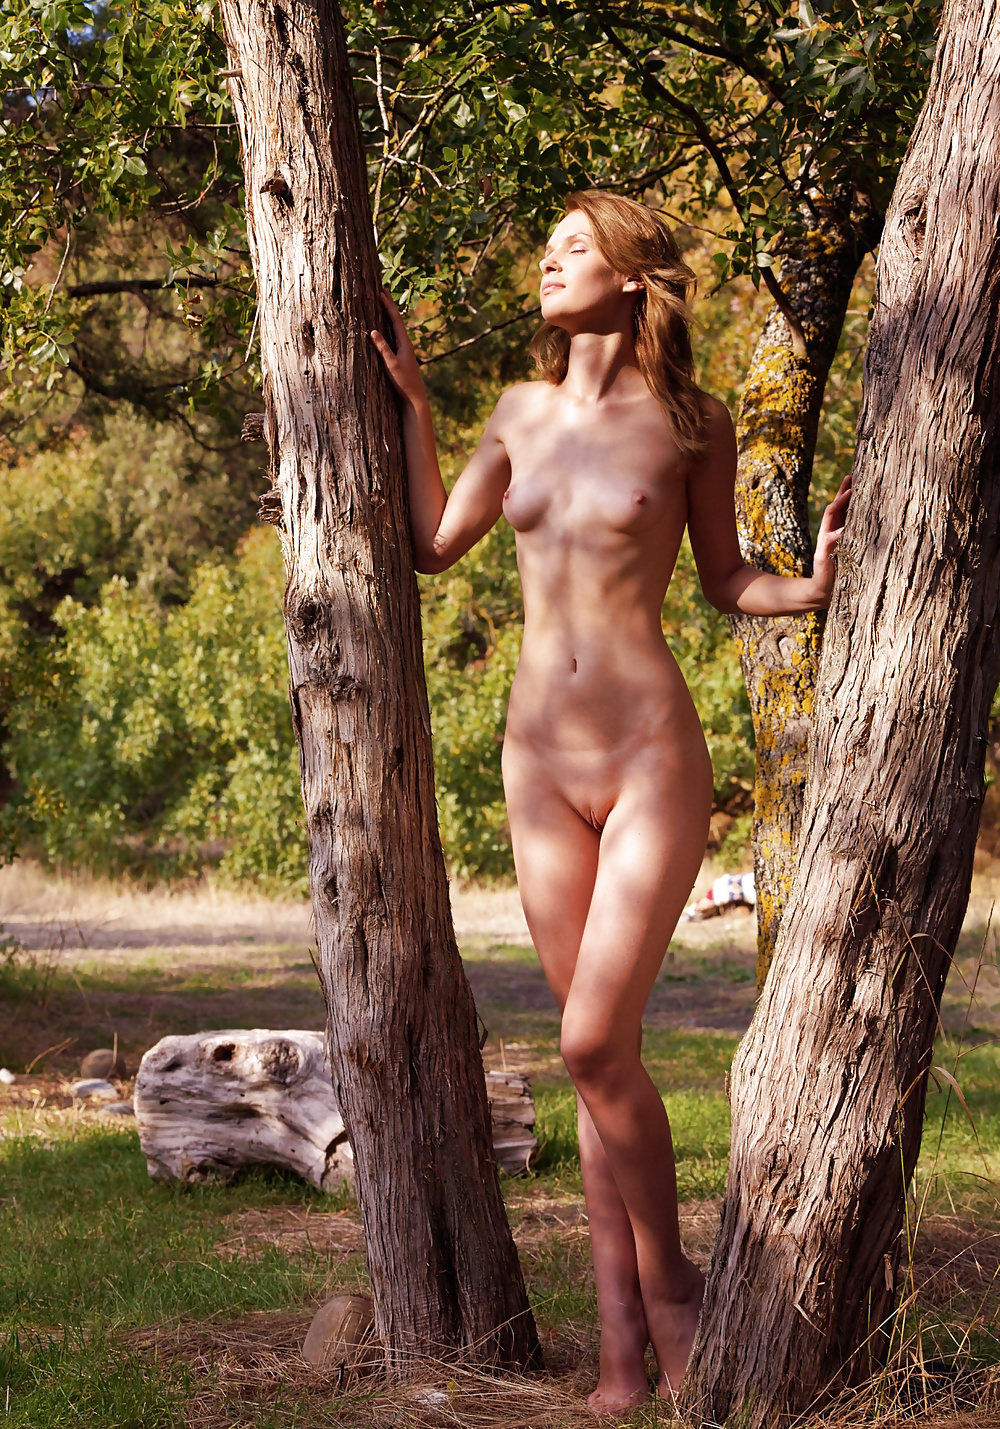 Teen nudist photography remarkable, this